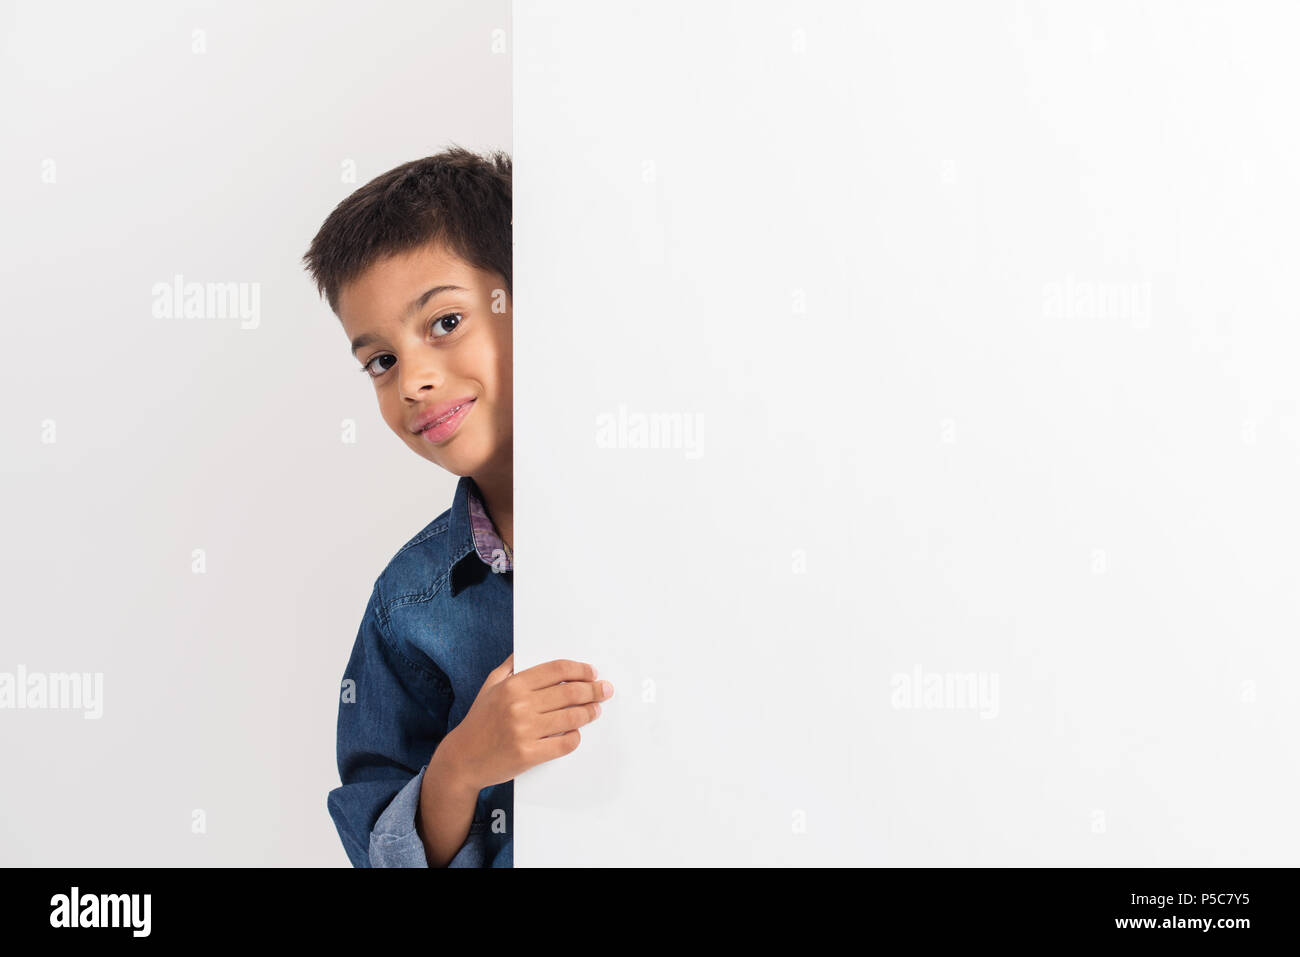 Portrait of a happy little boy holding a blank board against white background. - Stock Image